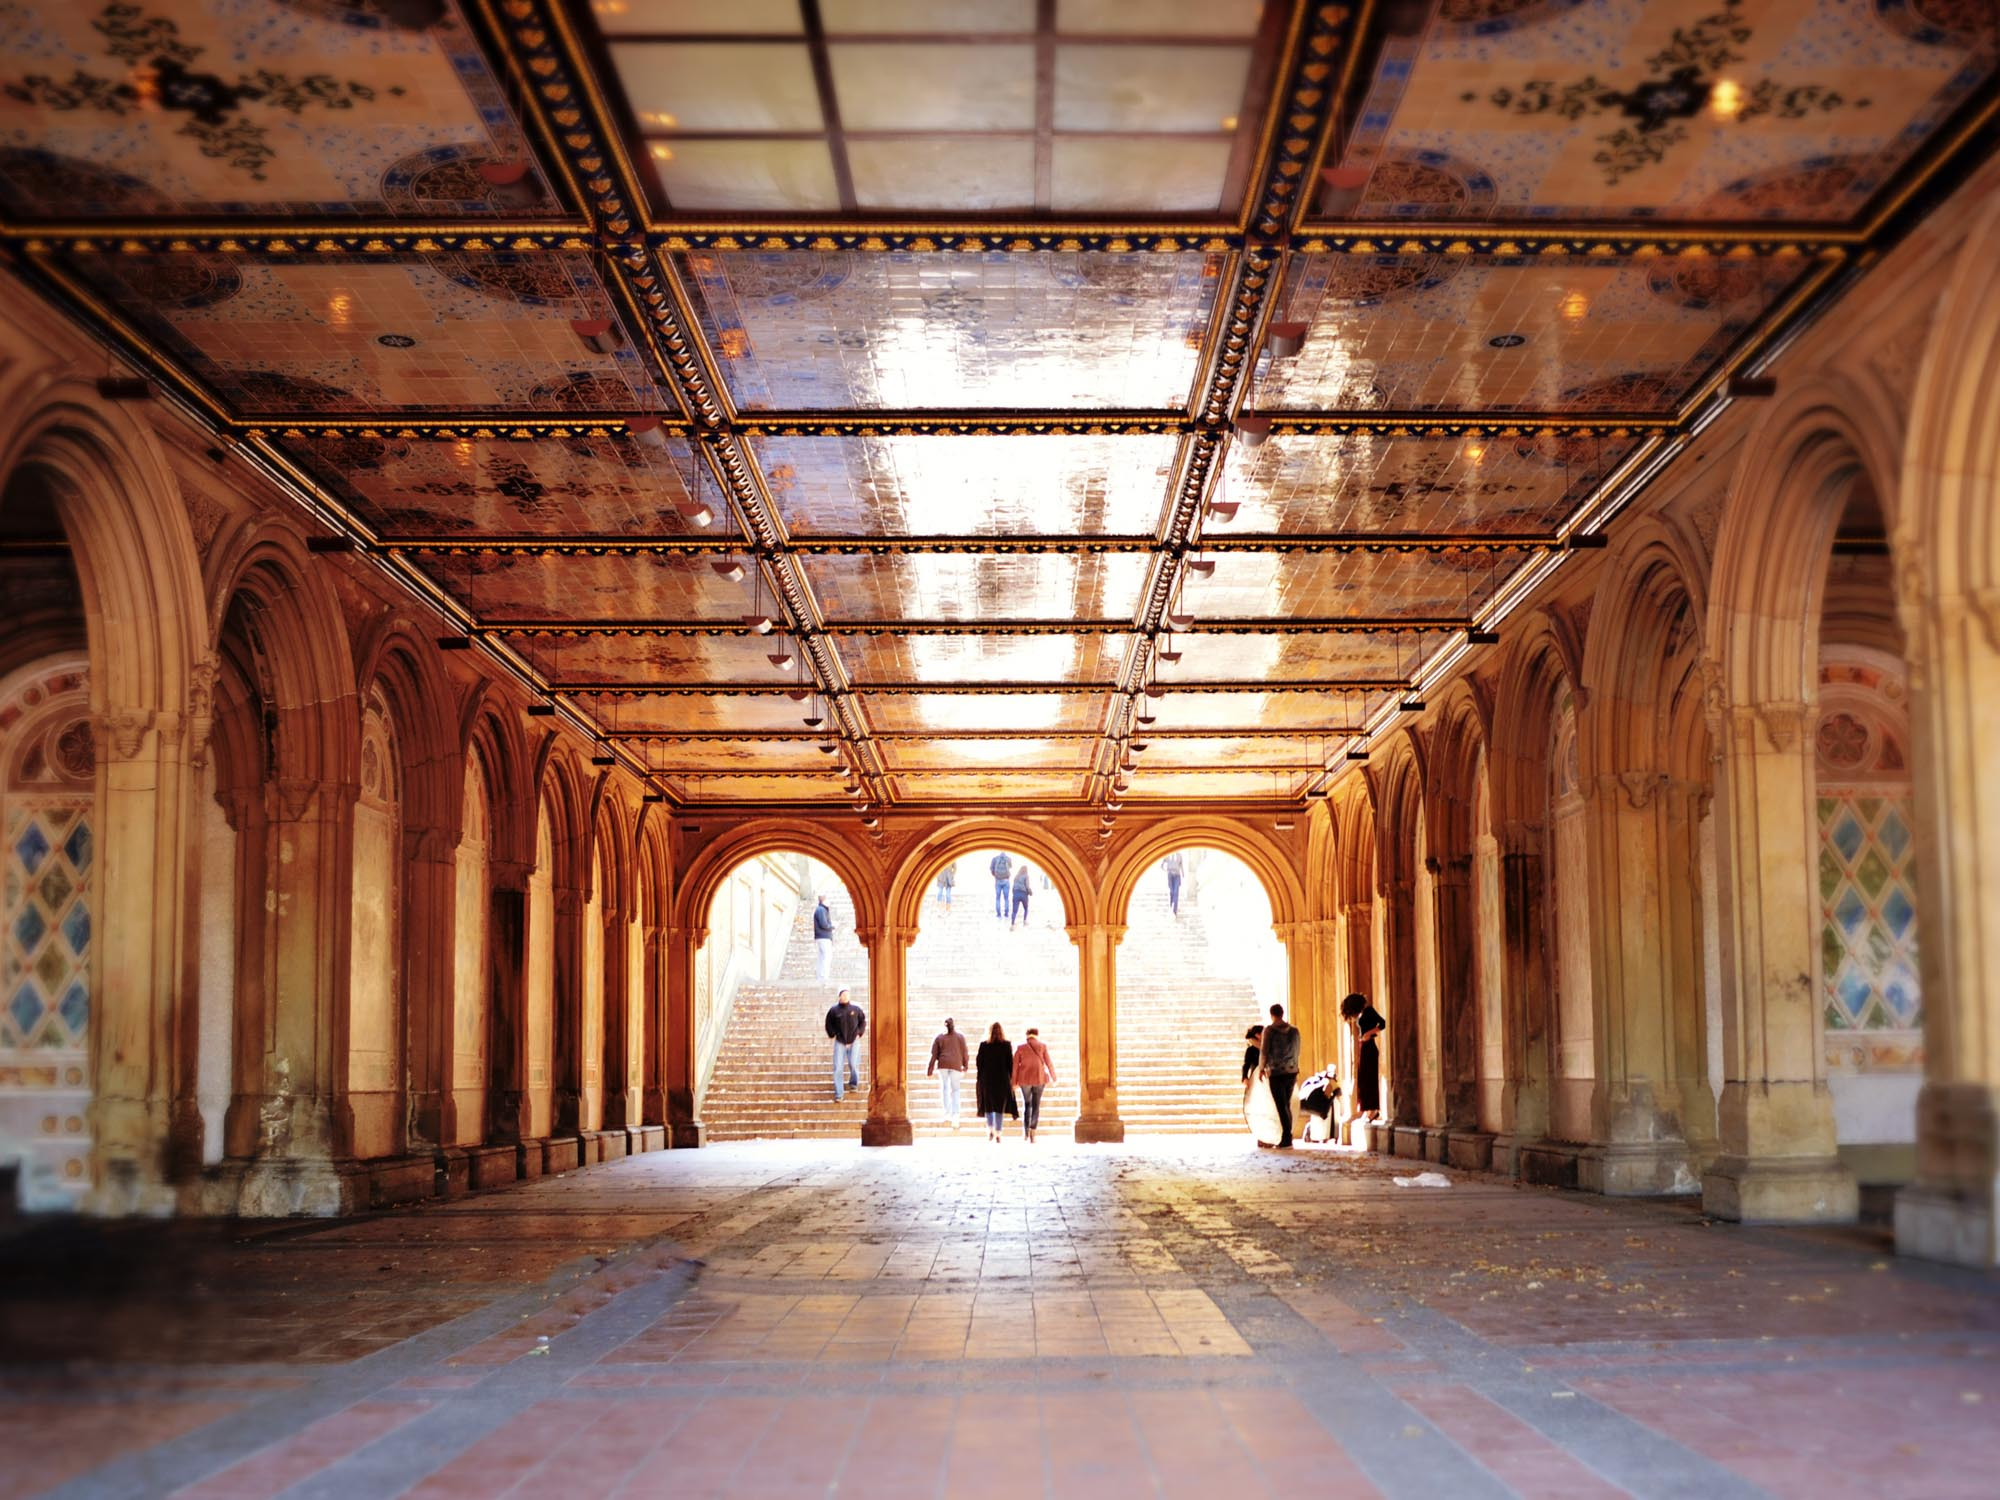 The Arcade at Bethesda Terrace in Central Park